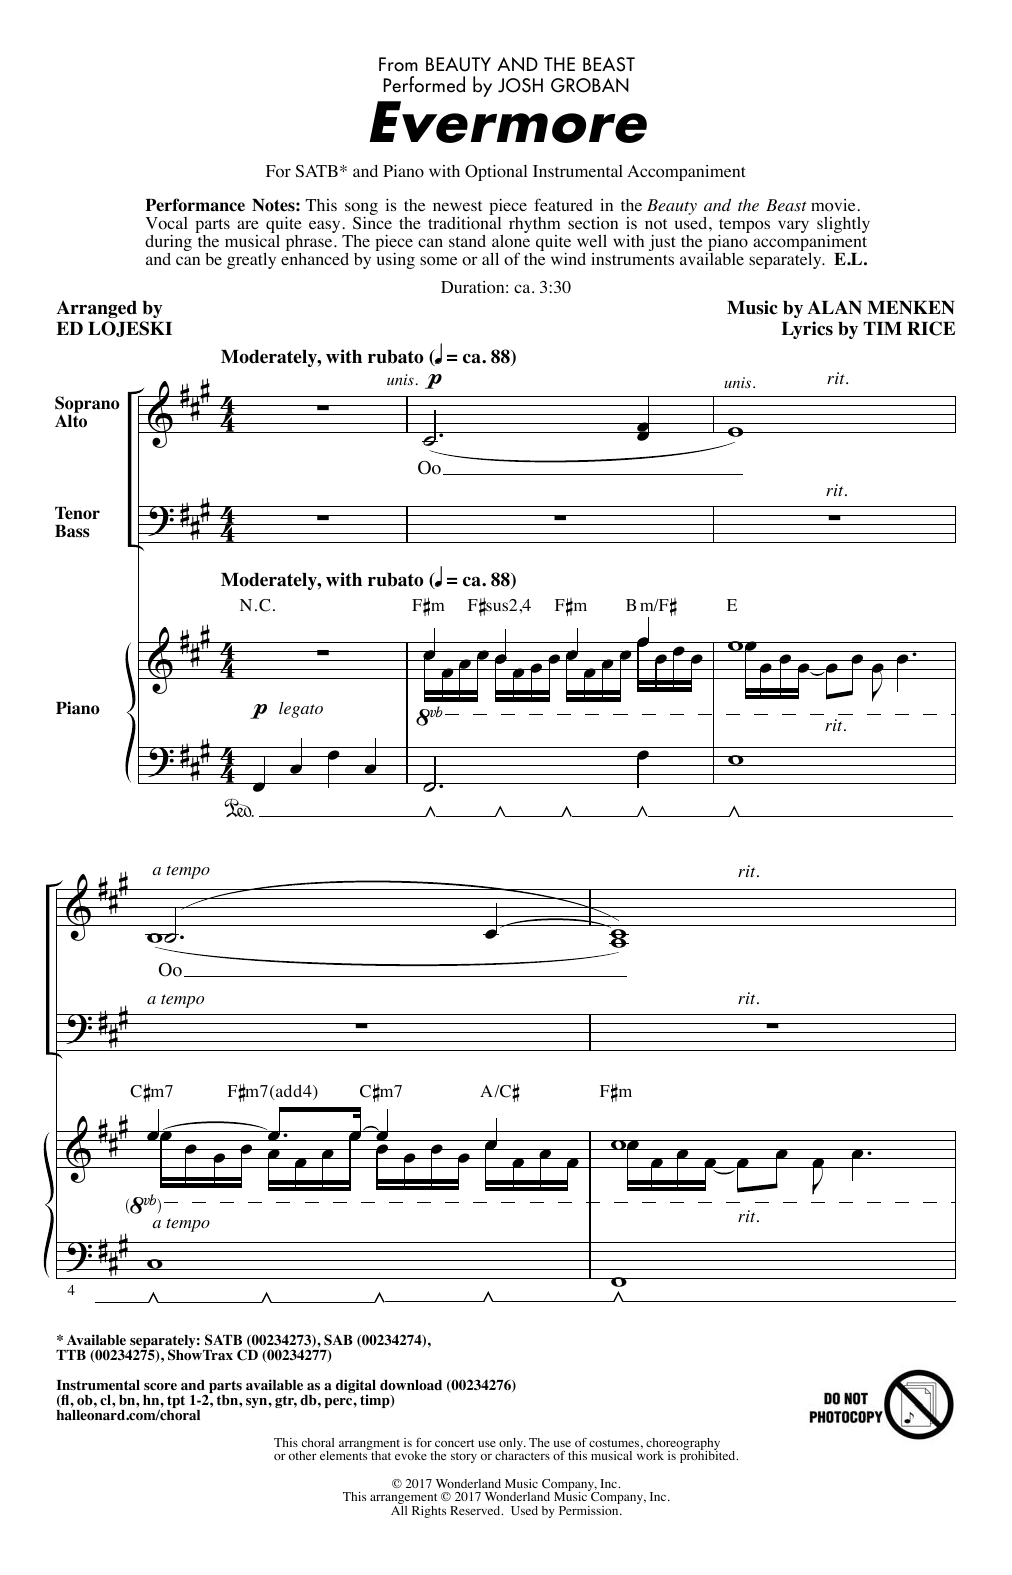 Evermore (from 'Beauty And The Beast') (arr. Ed Lojeski) (SATB Choir)